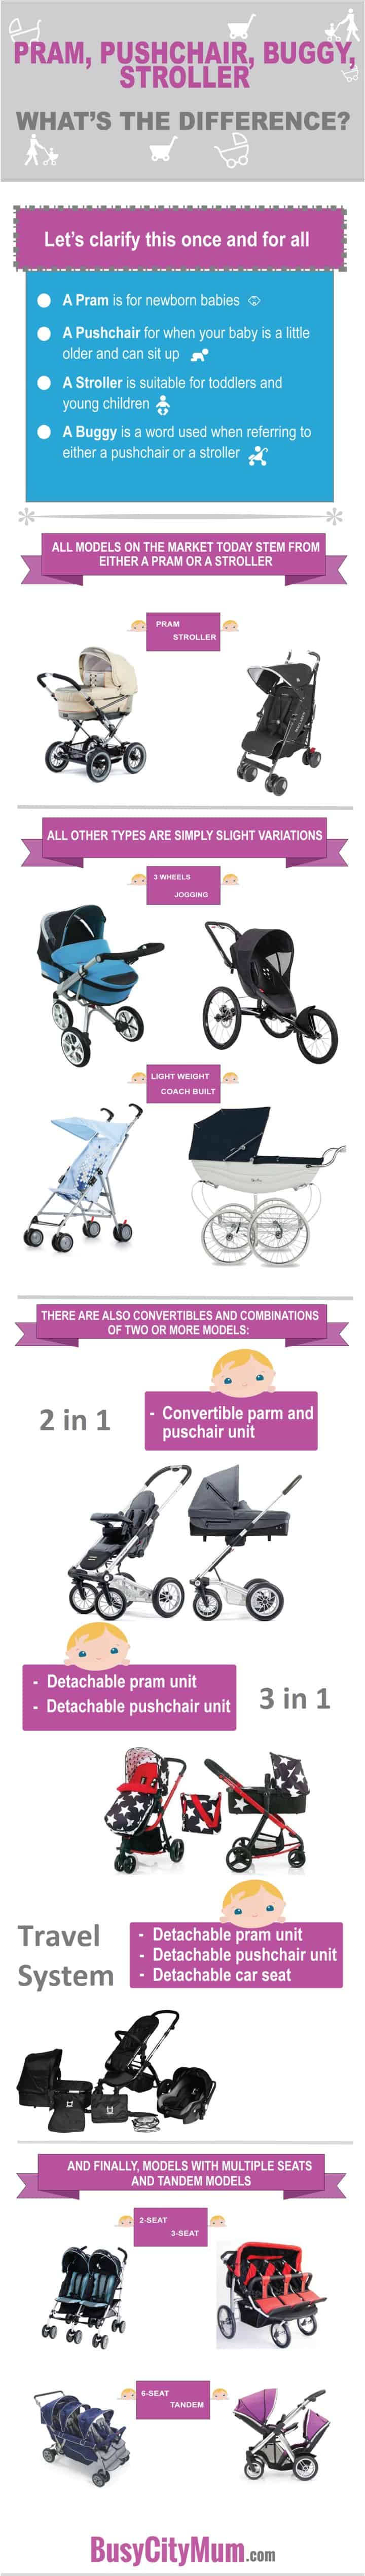 Difference between a Pram, Stroller, Buggy, and Pushchair